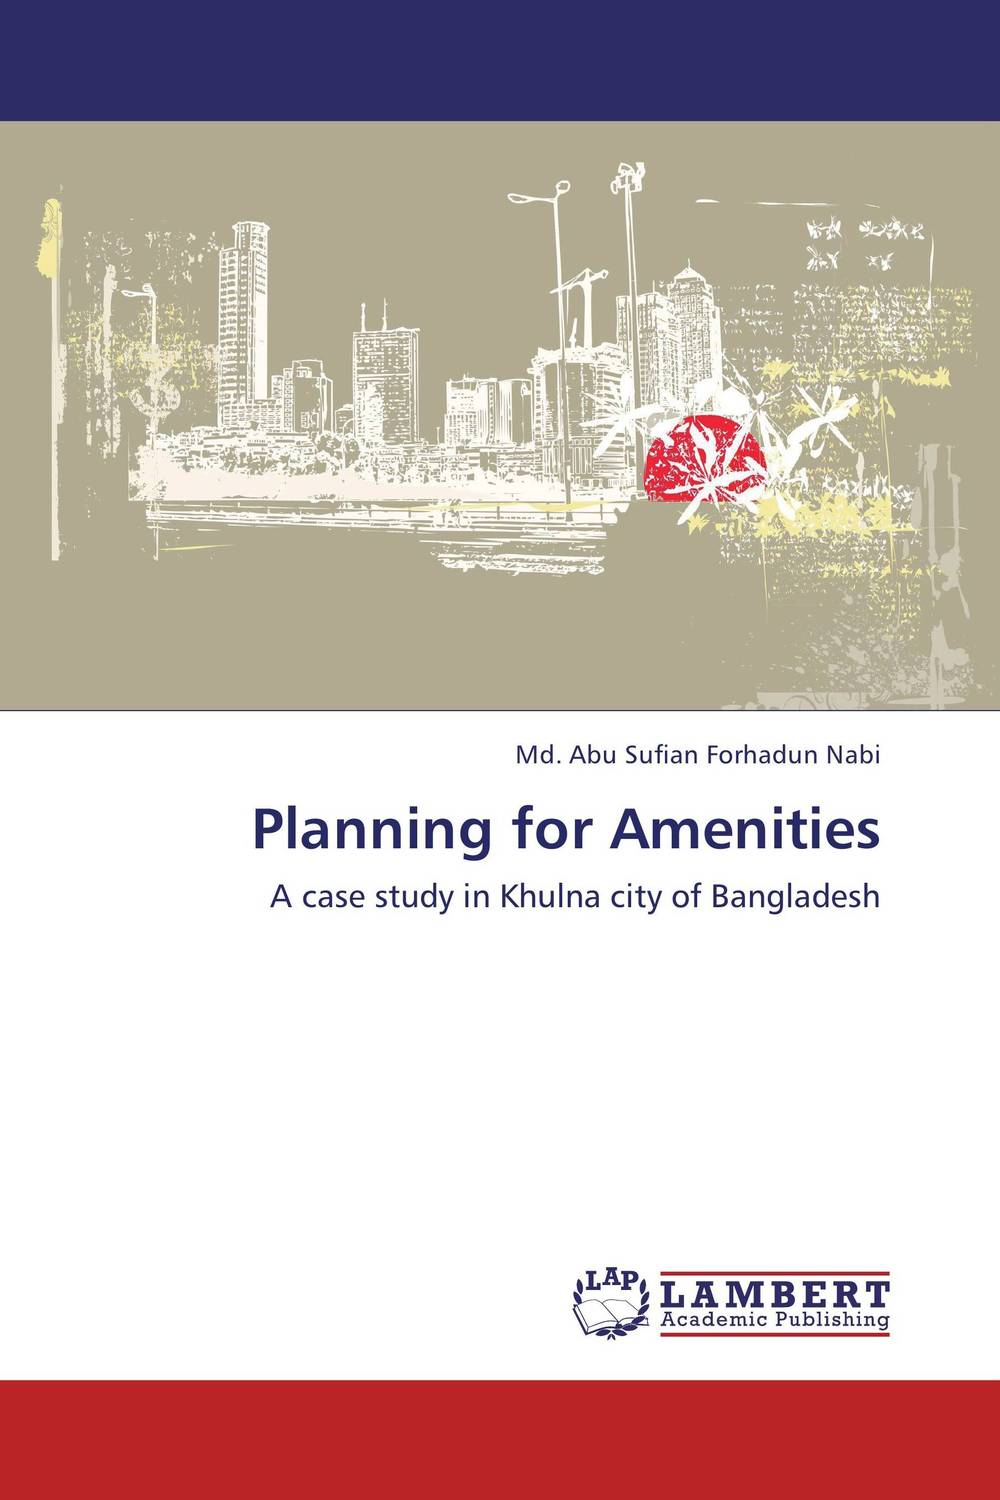 Planning for Amenities